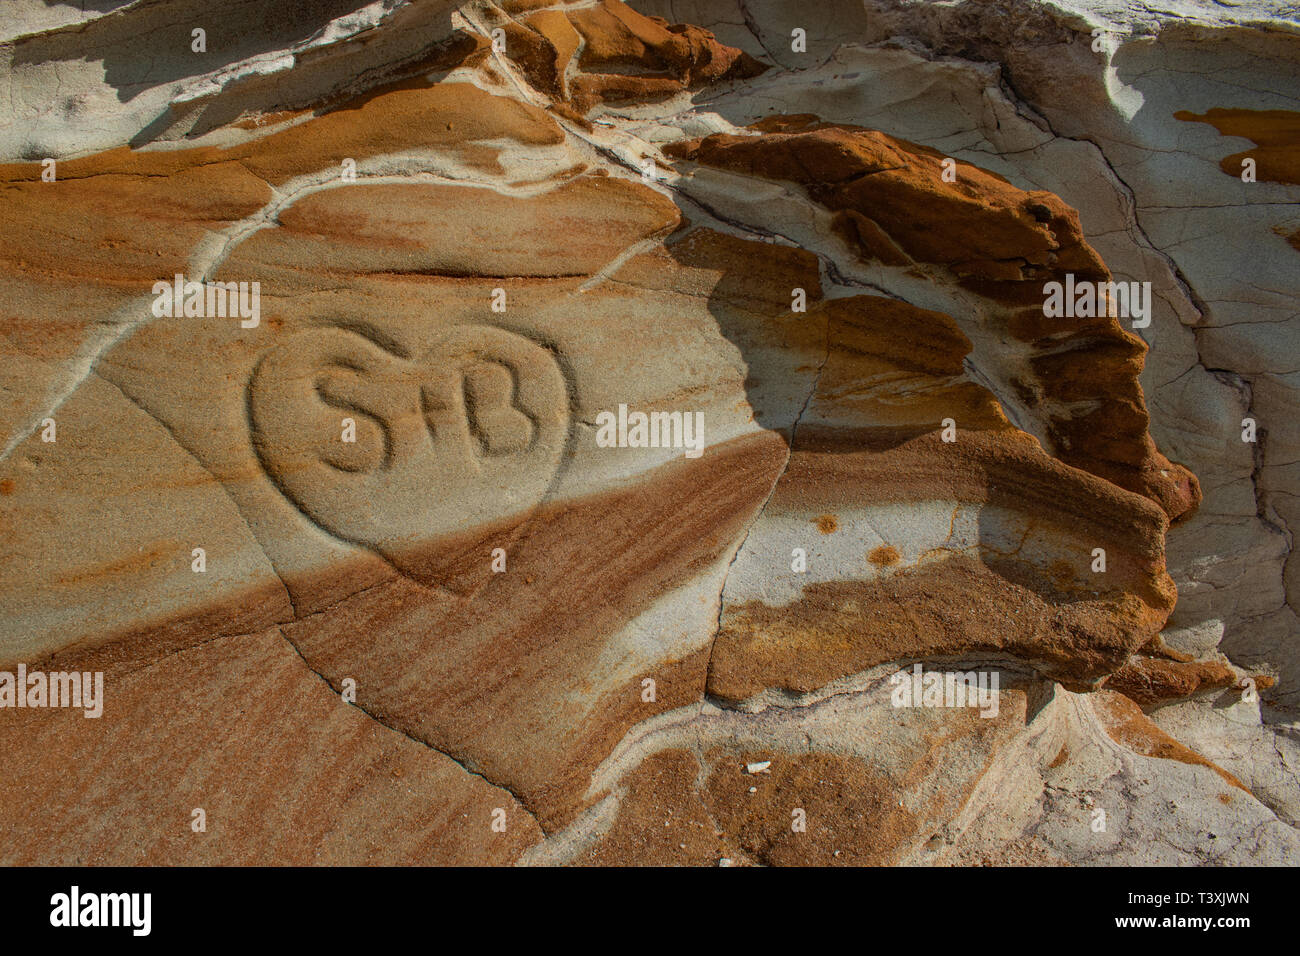 A heart carved into a limestone rock outcrop with different bands of rock, color and patterns - Stock Image